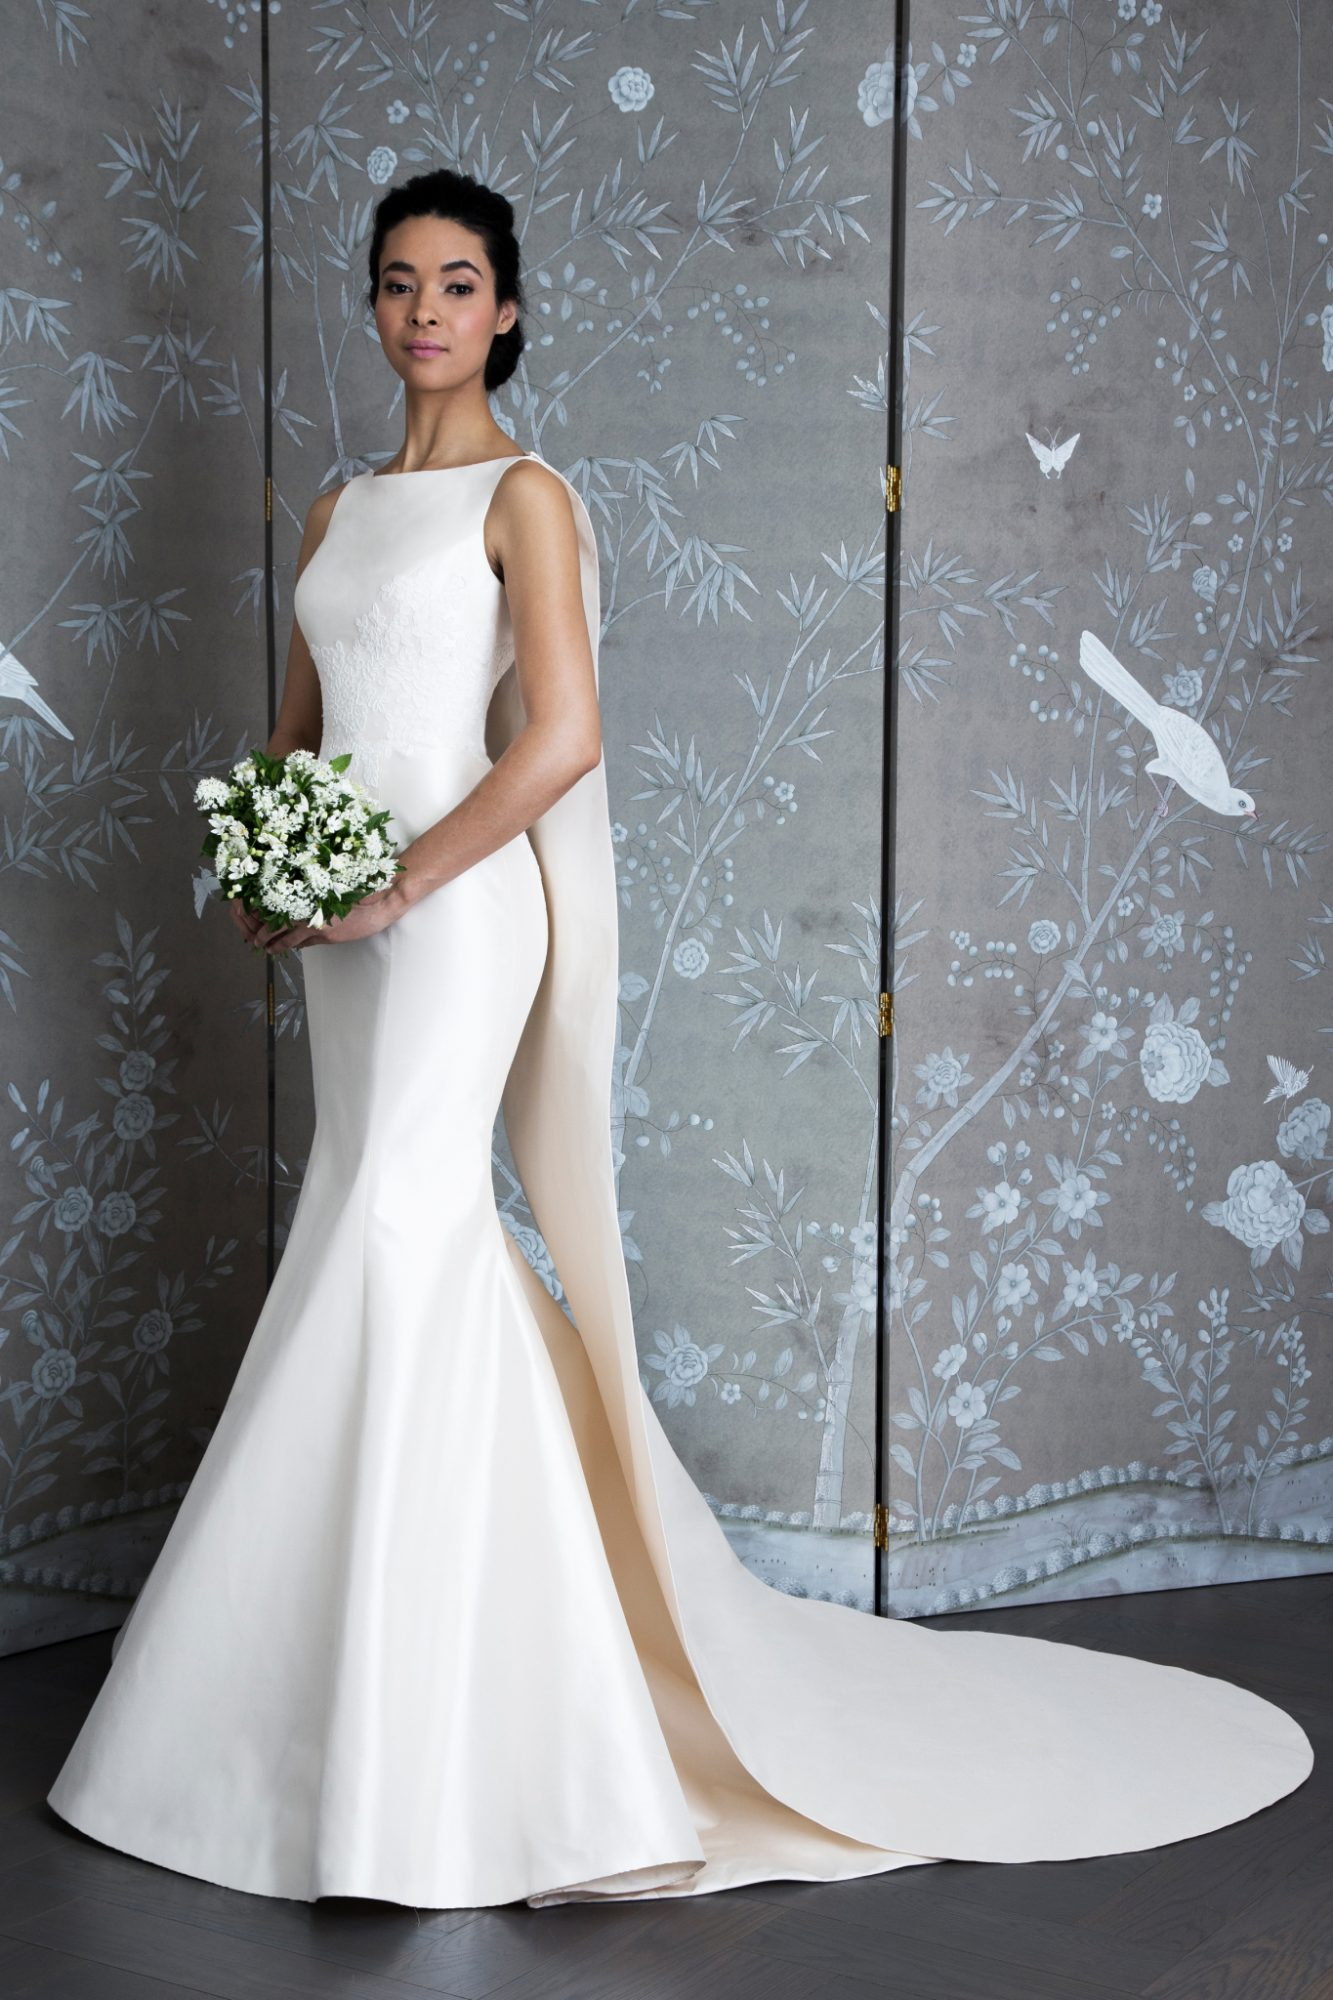 Wedding dress from Spring 2019